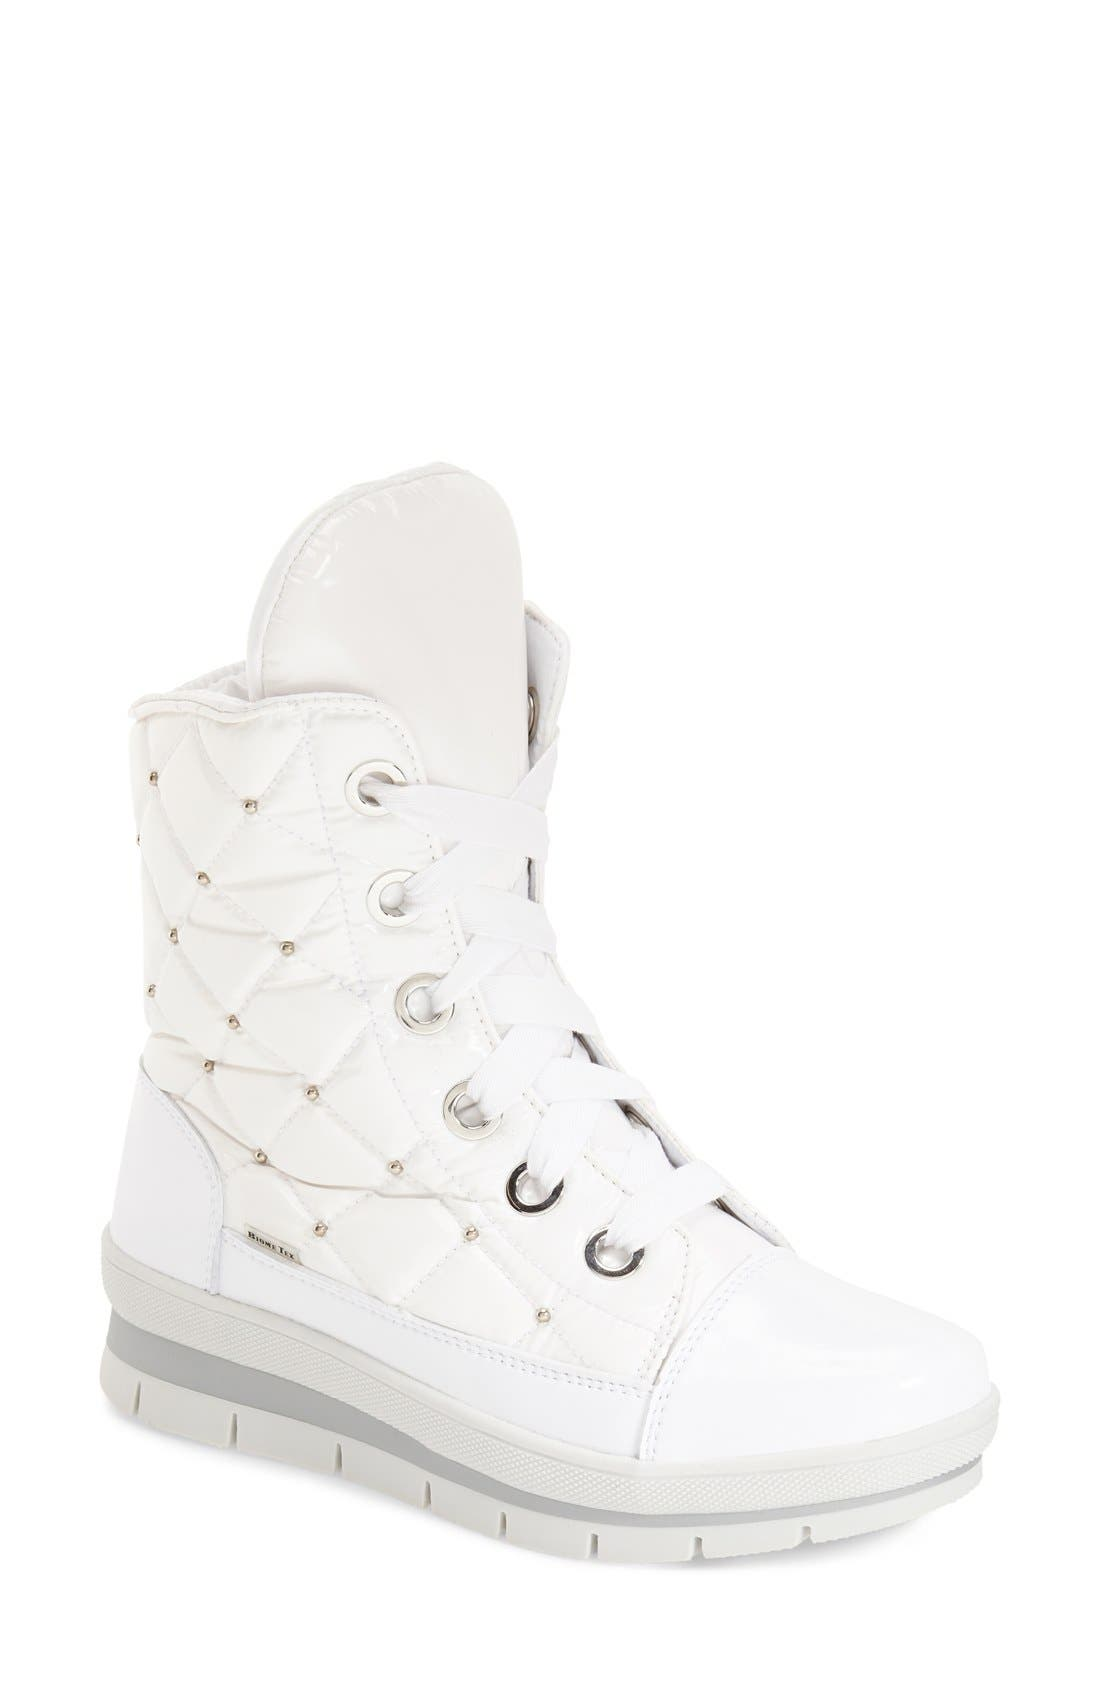 Alternate Image 1 Selected - JOG DOG Waterproof Quilted Lace-Up Boot (Women)